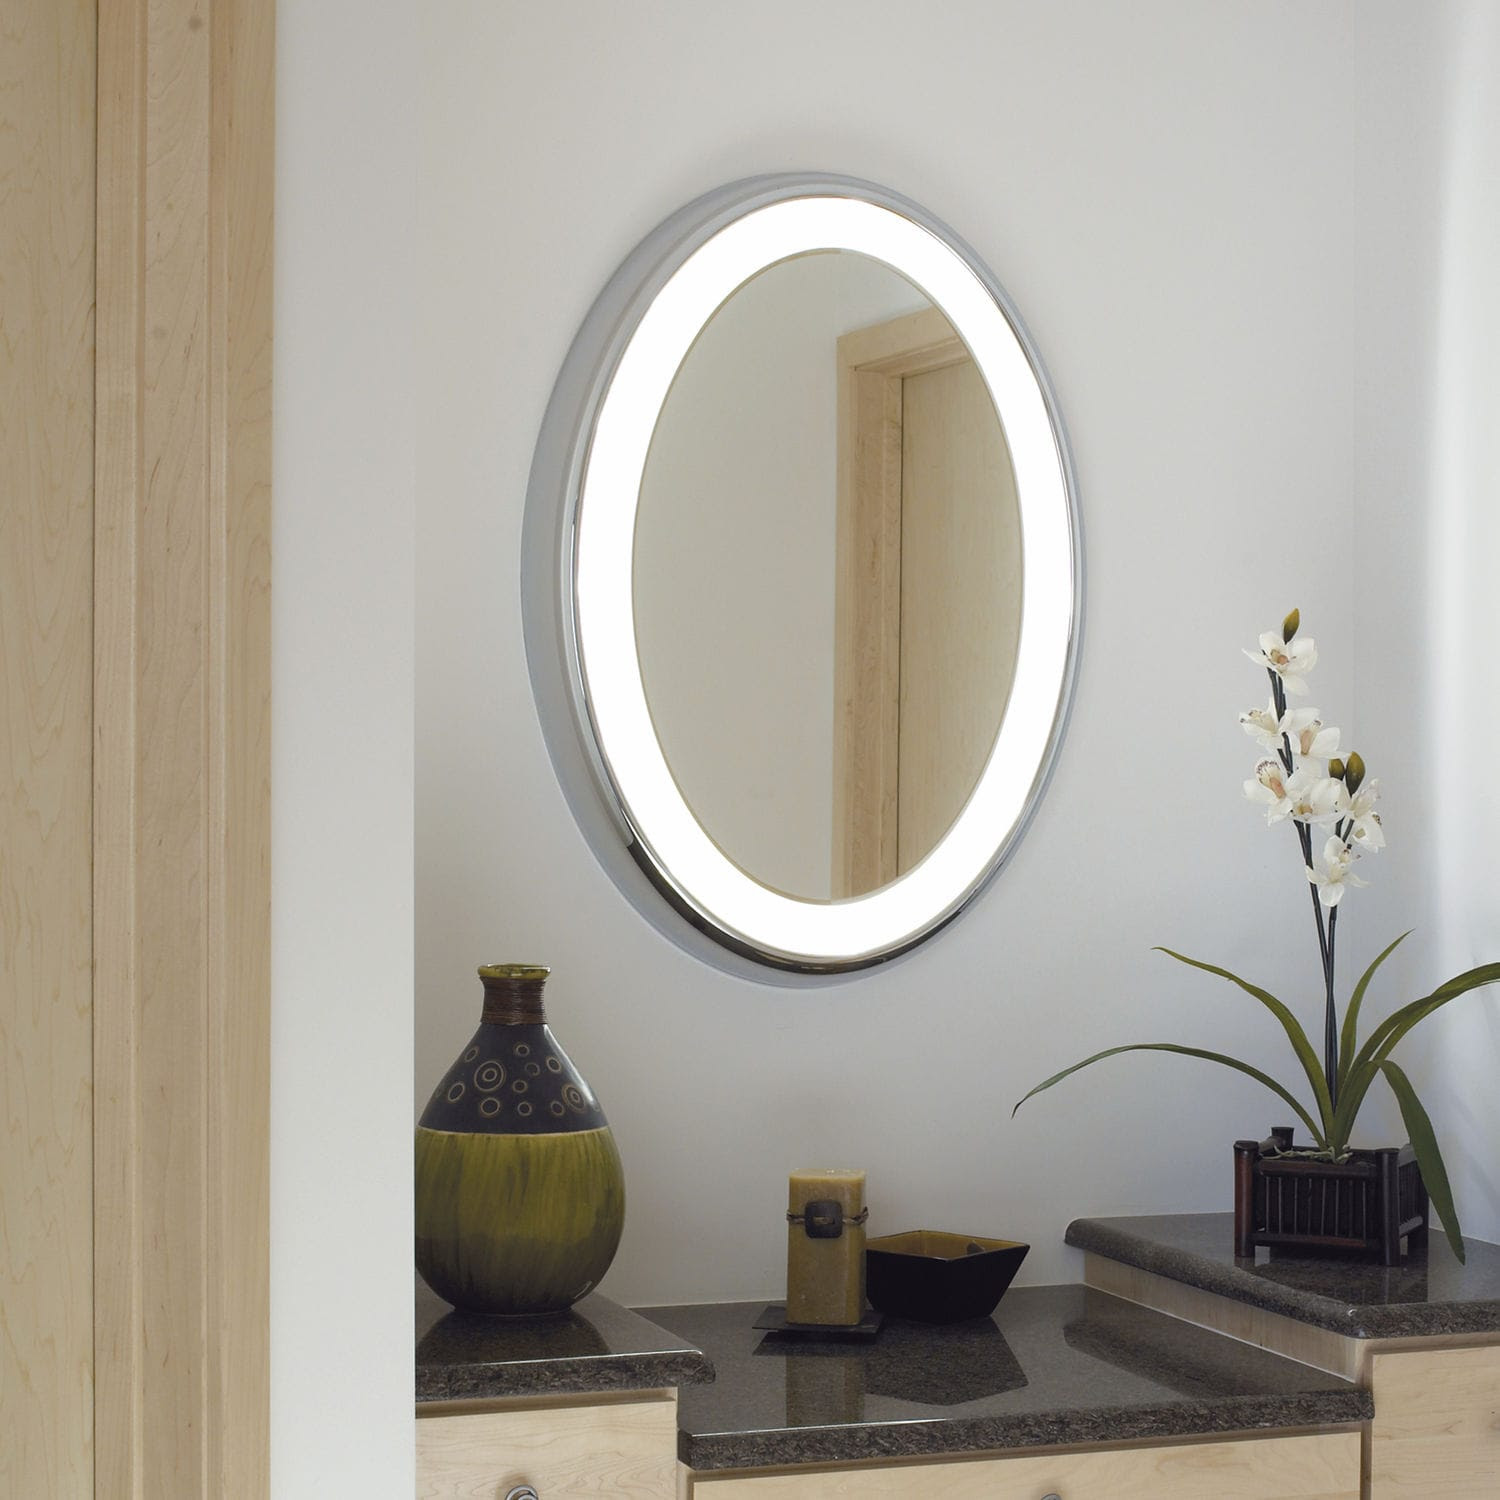 Wall Mounted Bathroom Mirror Led Illuminated Contemporary Oval